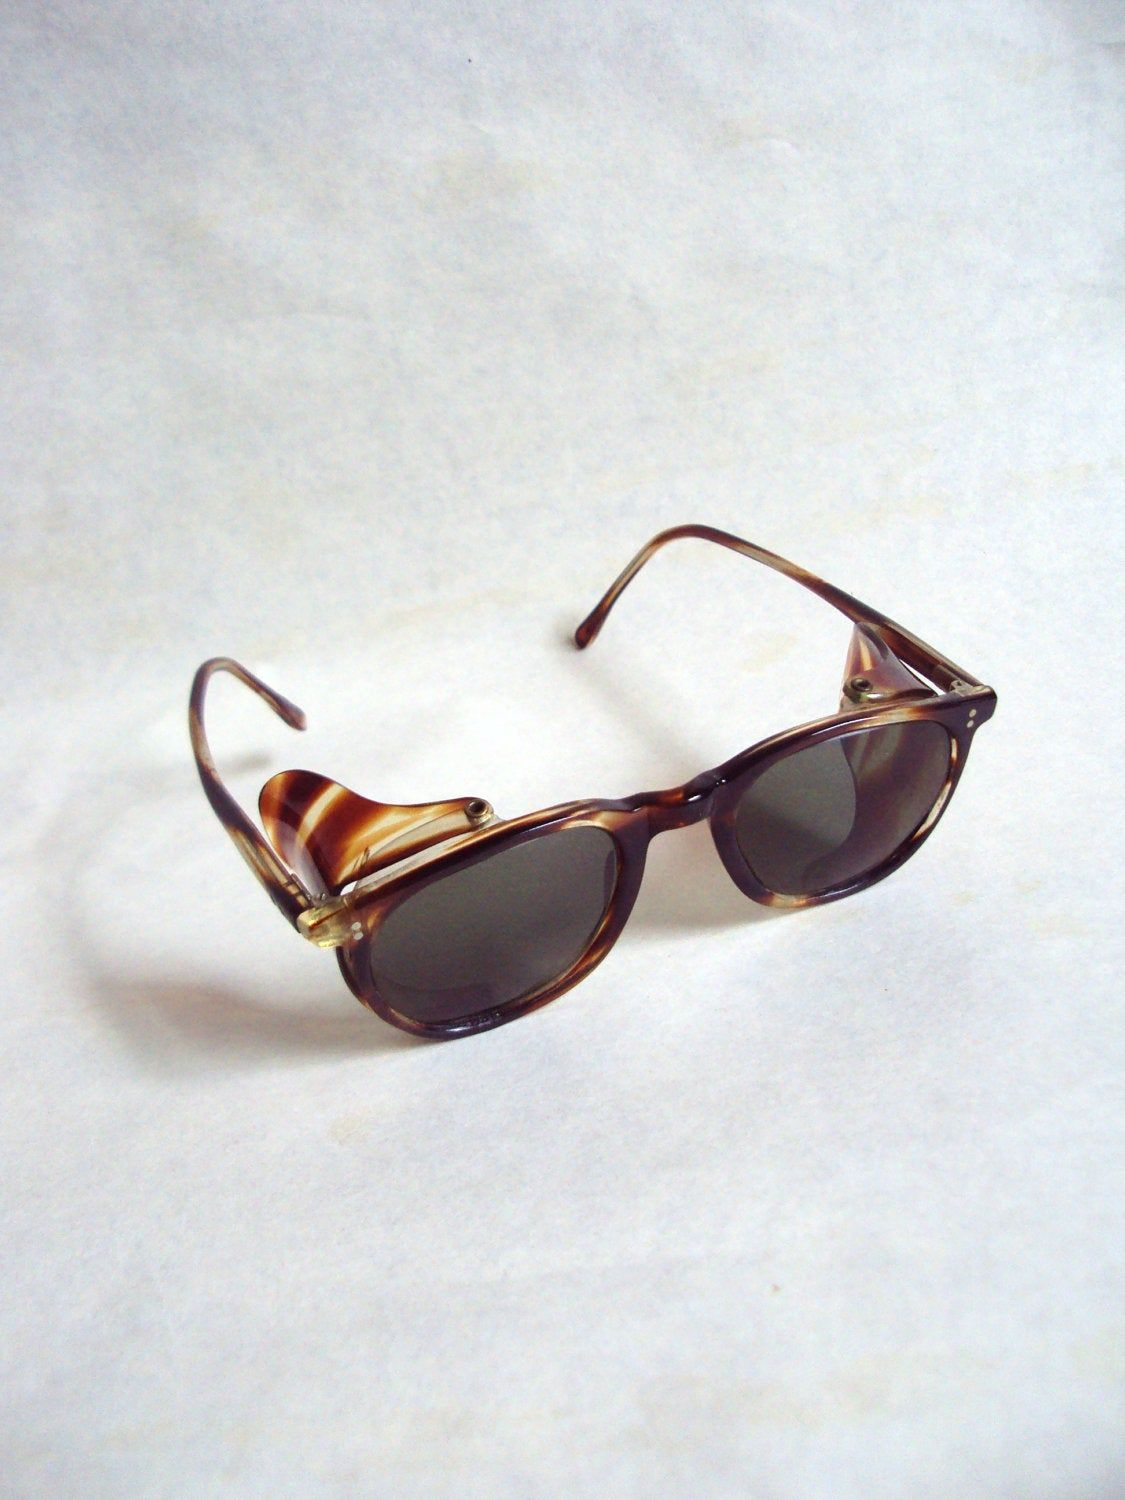 1940s tortoiseshell effect lucite driving sunglasses with